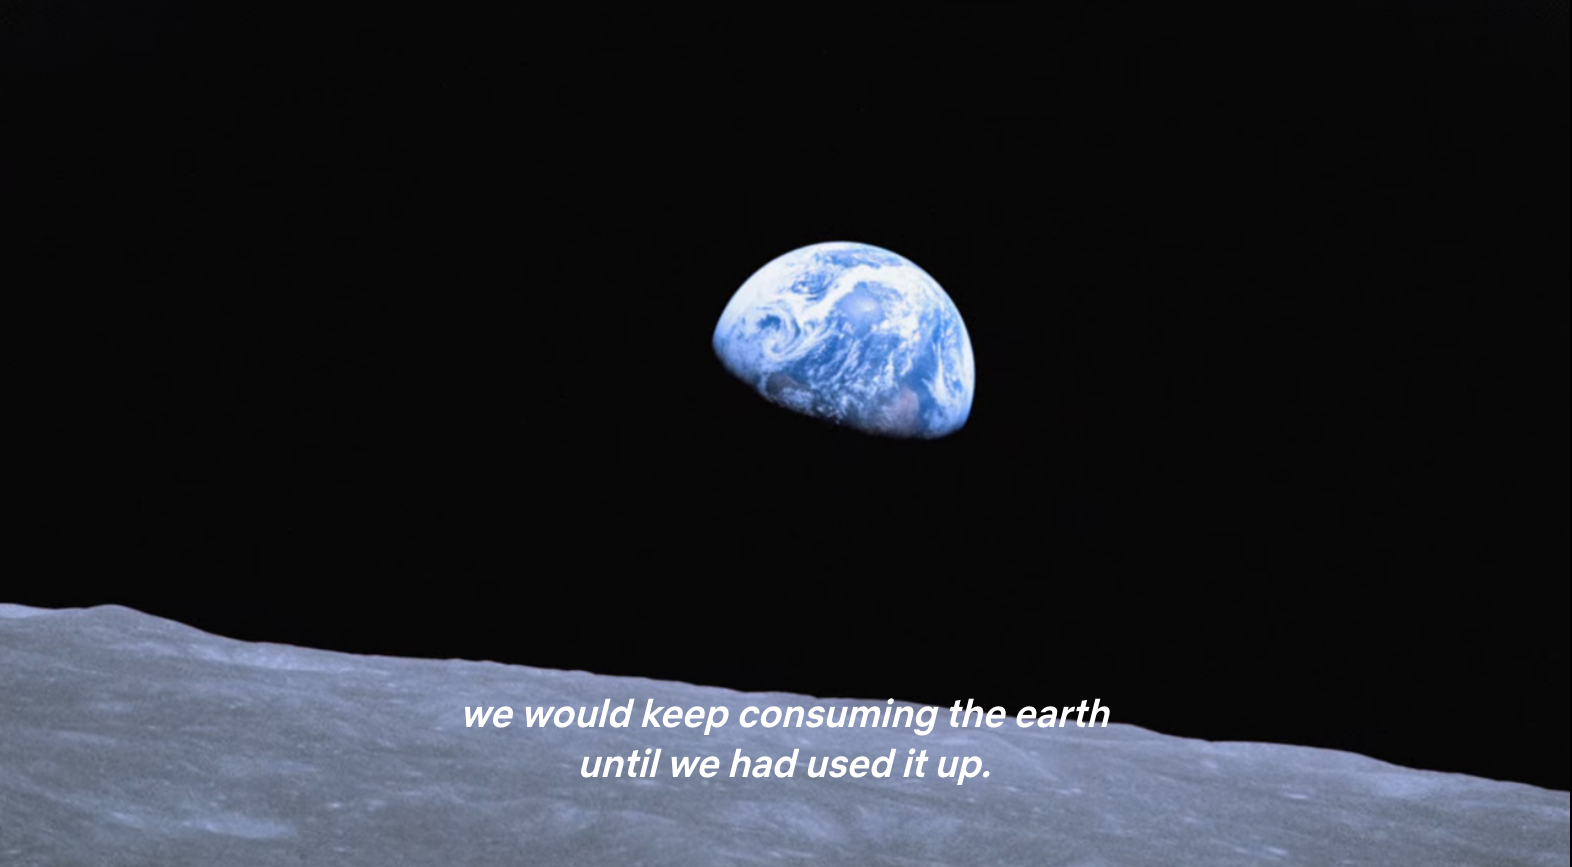 """Footage from the first shots of Earth from outer space, a blue planet partially in shadow with caption: """"we could keep consuming the earth until we had used it up."""""""